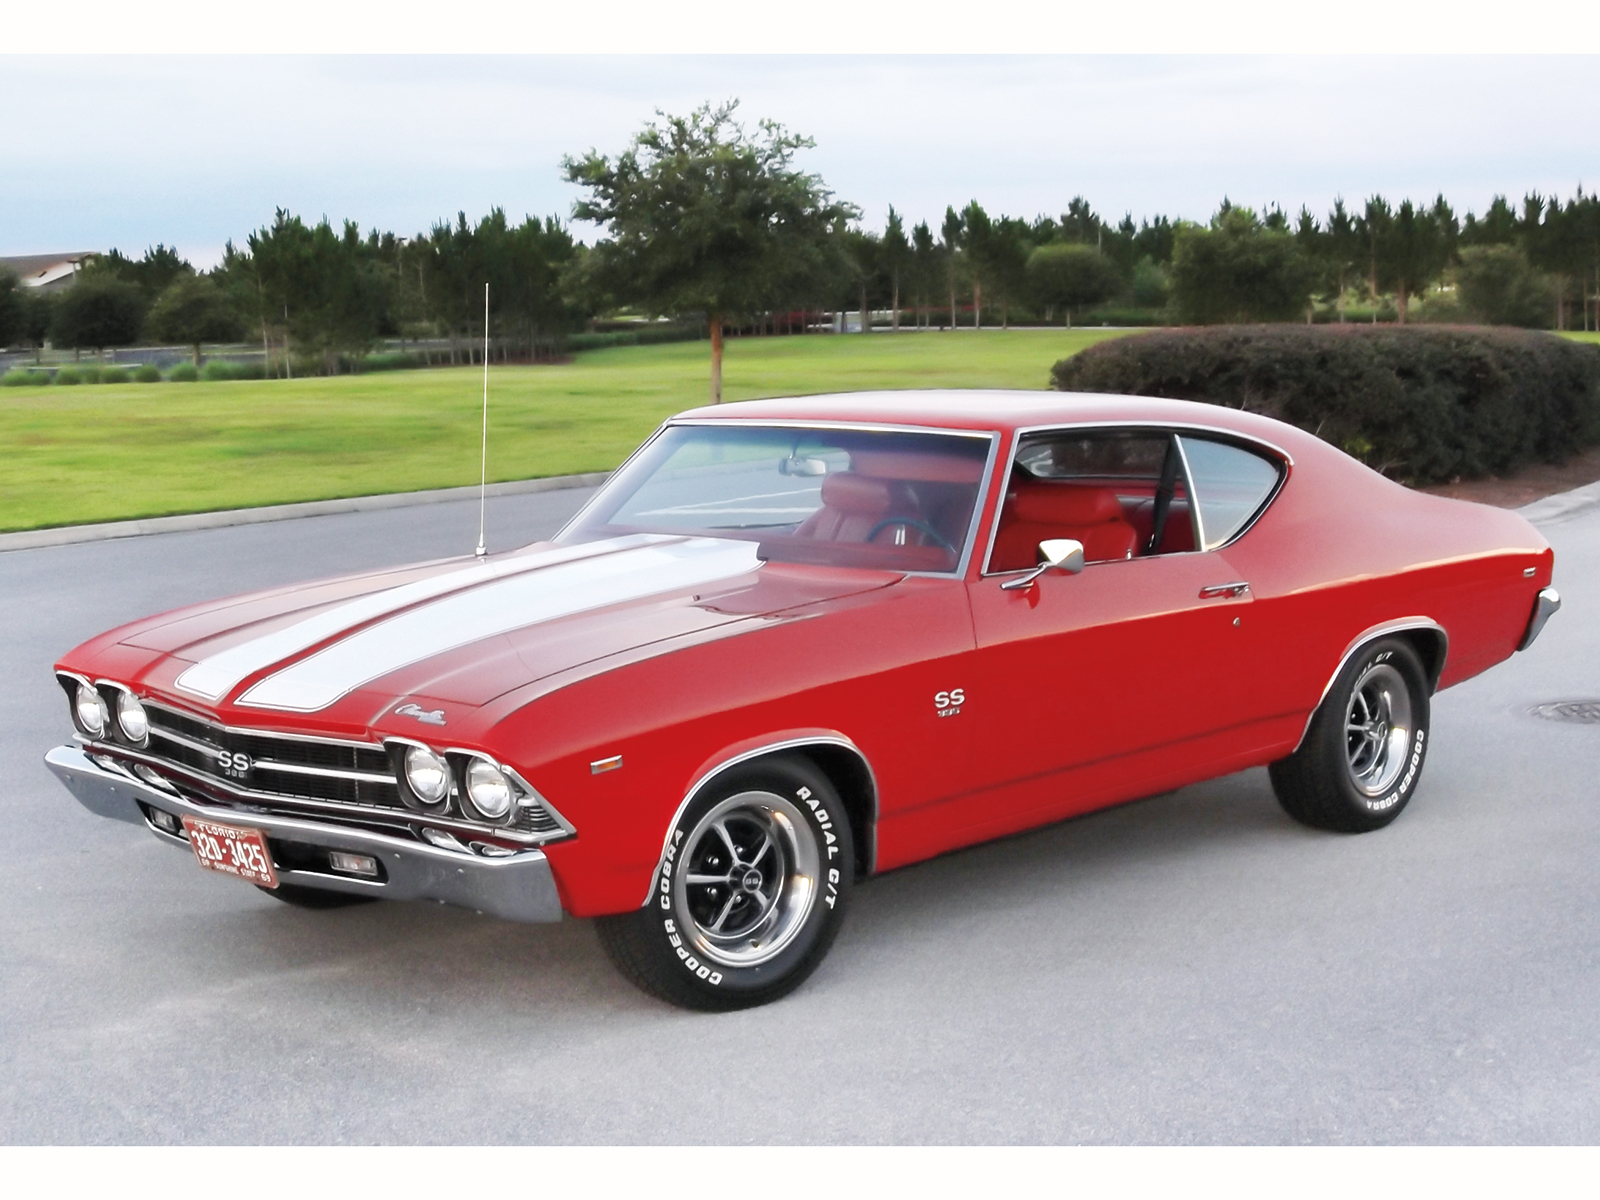 69 Chevelle For the love of GM cars Pinterest 1600x1200